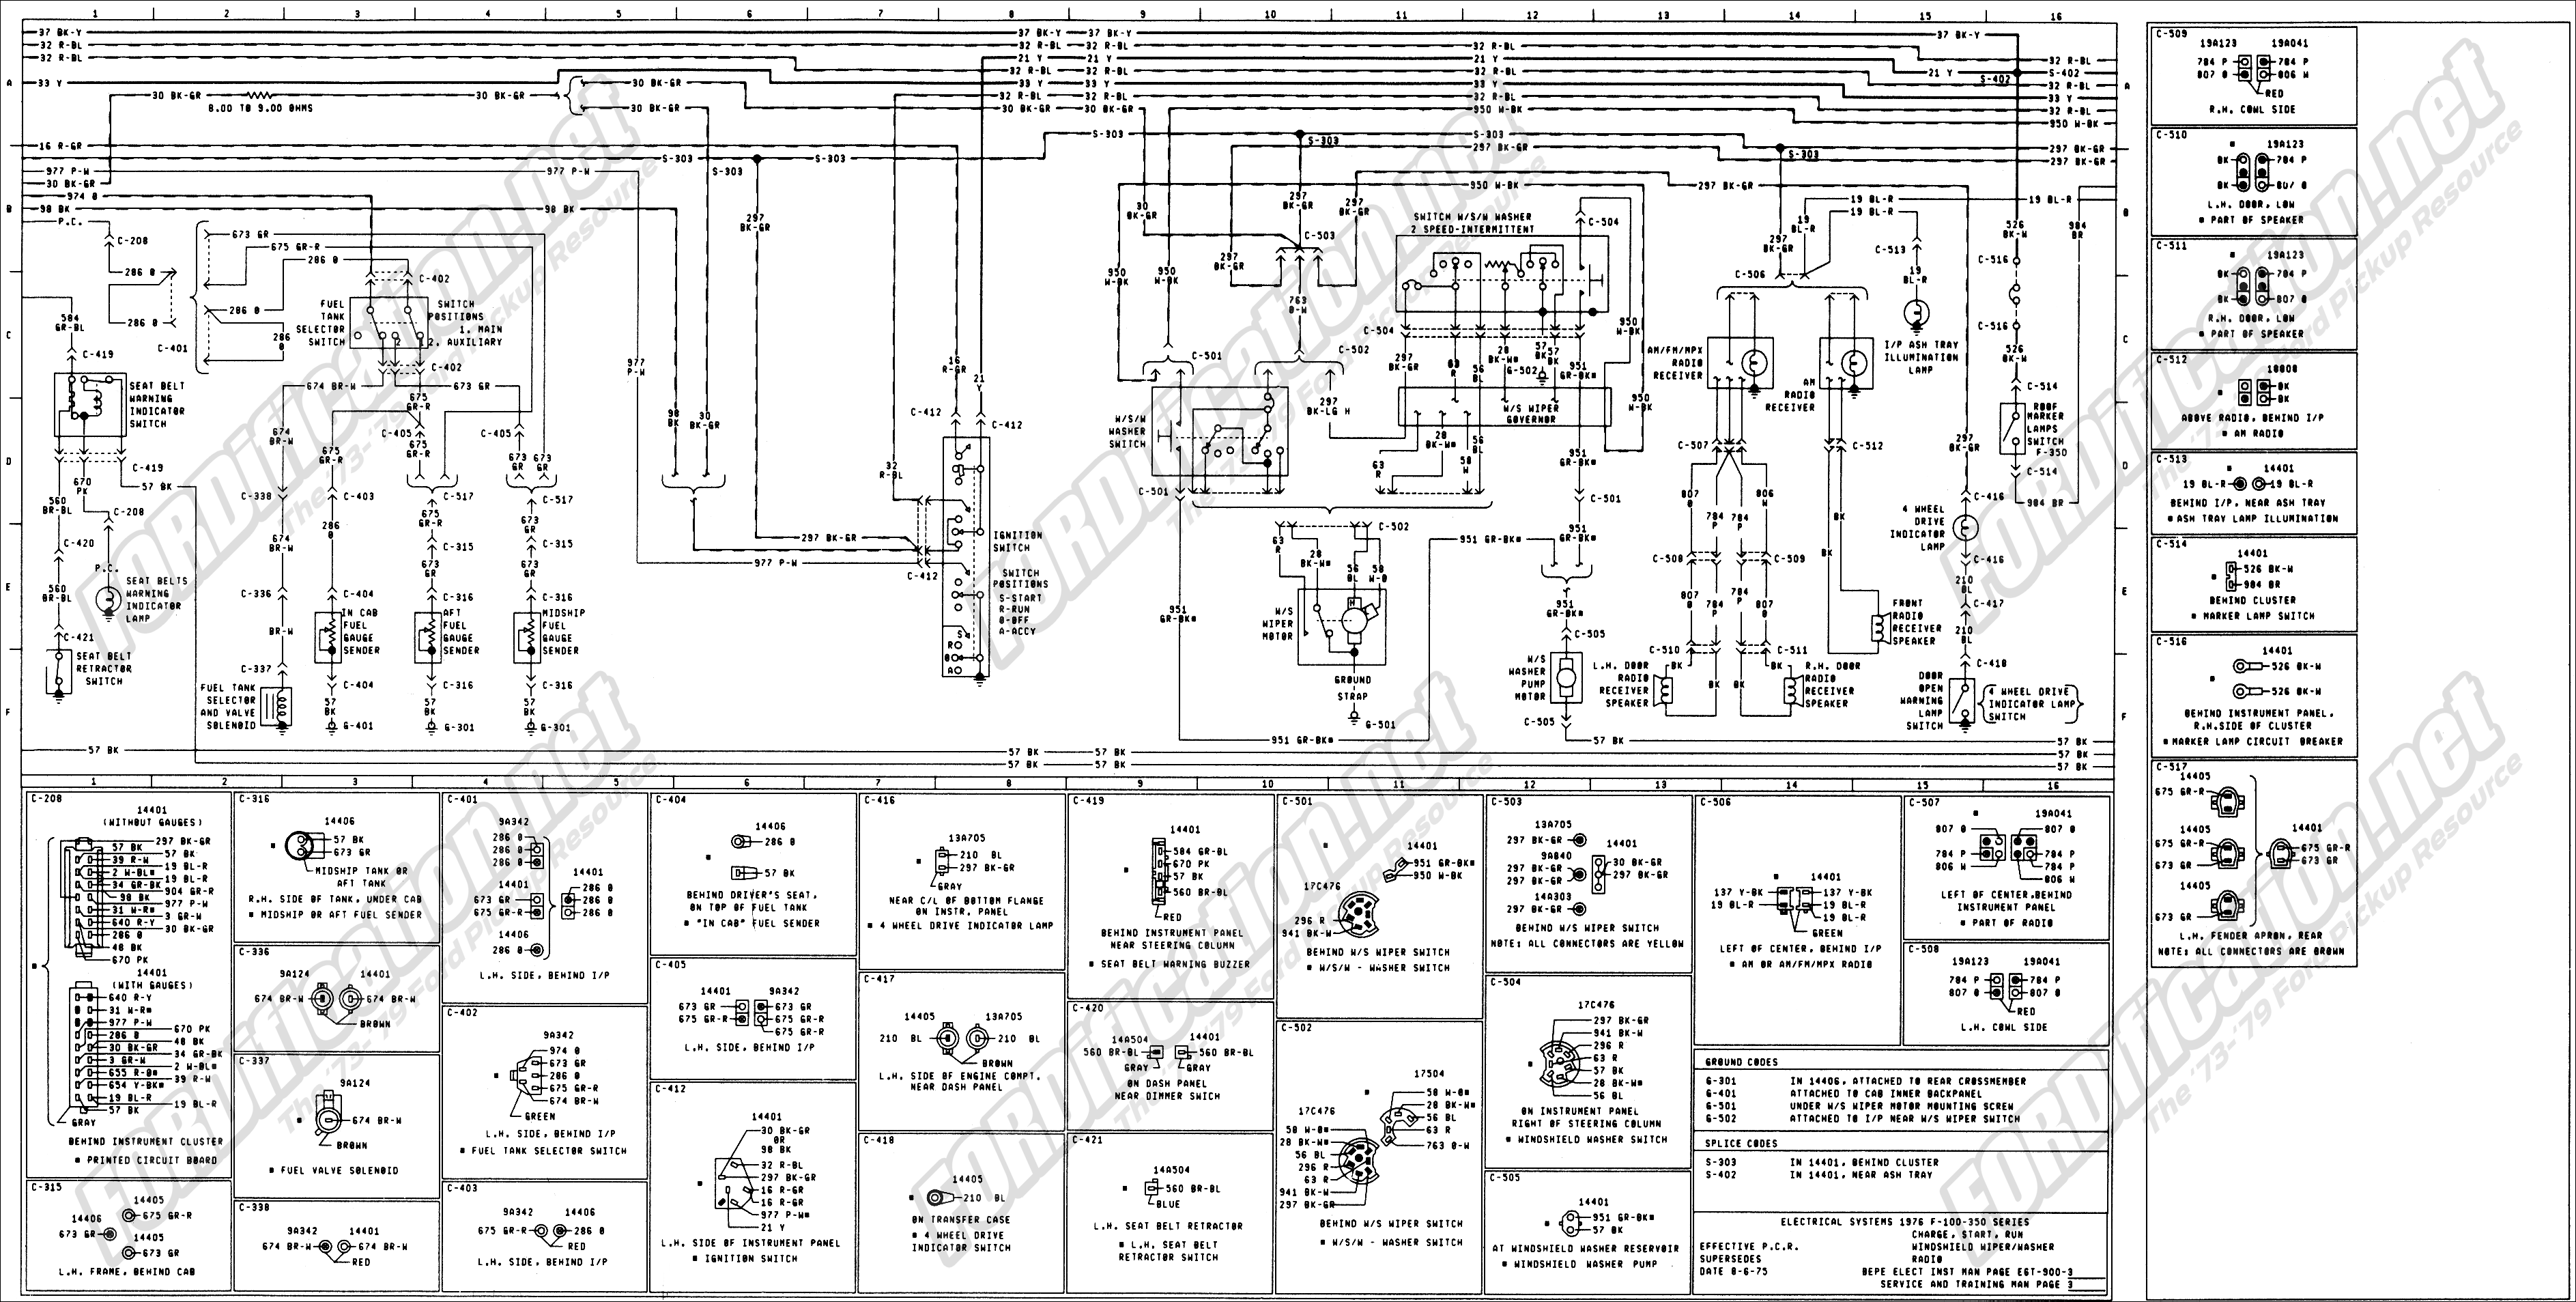 2012 Ford F350 Wiring Diagram Schematics 07 Crown Vic Fuse F550 Emissions